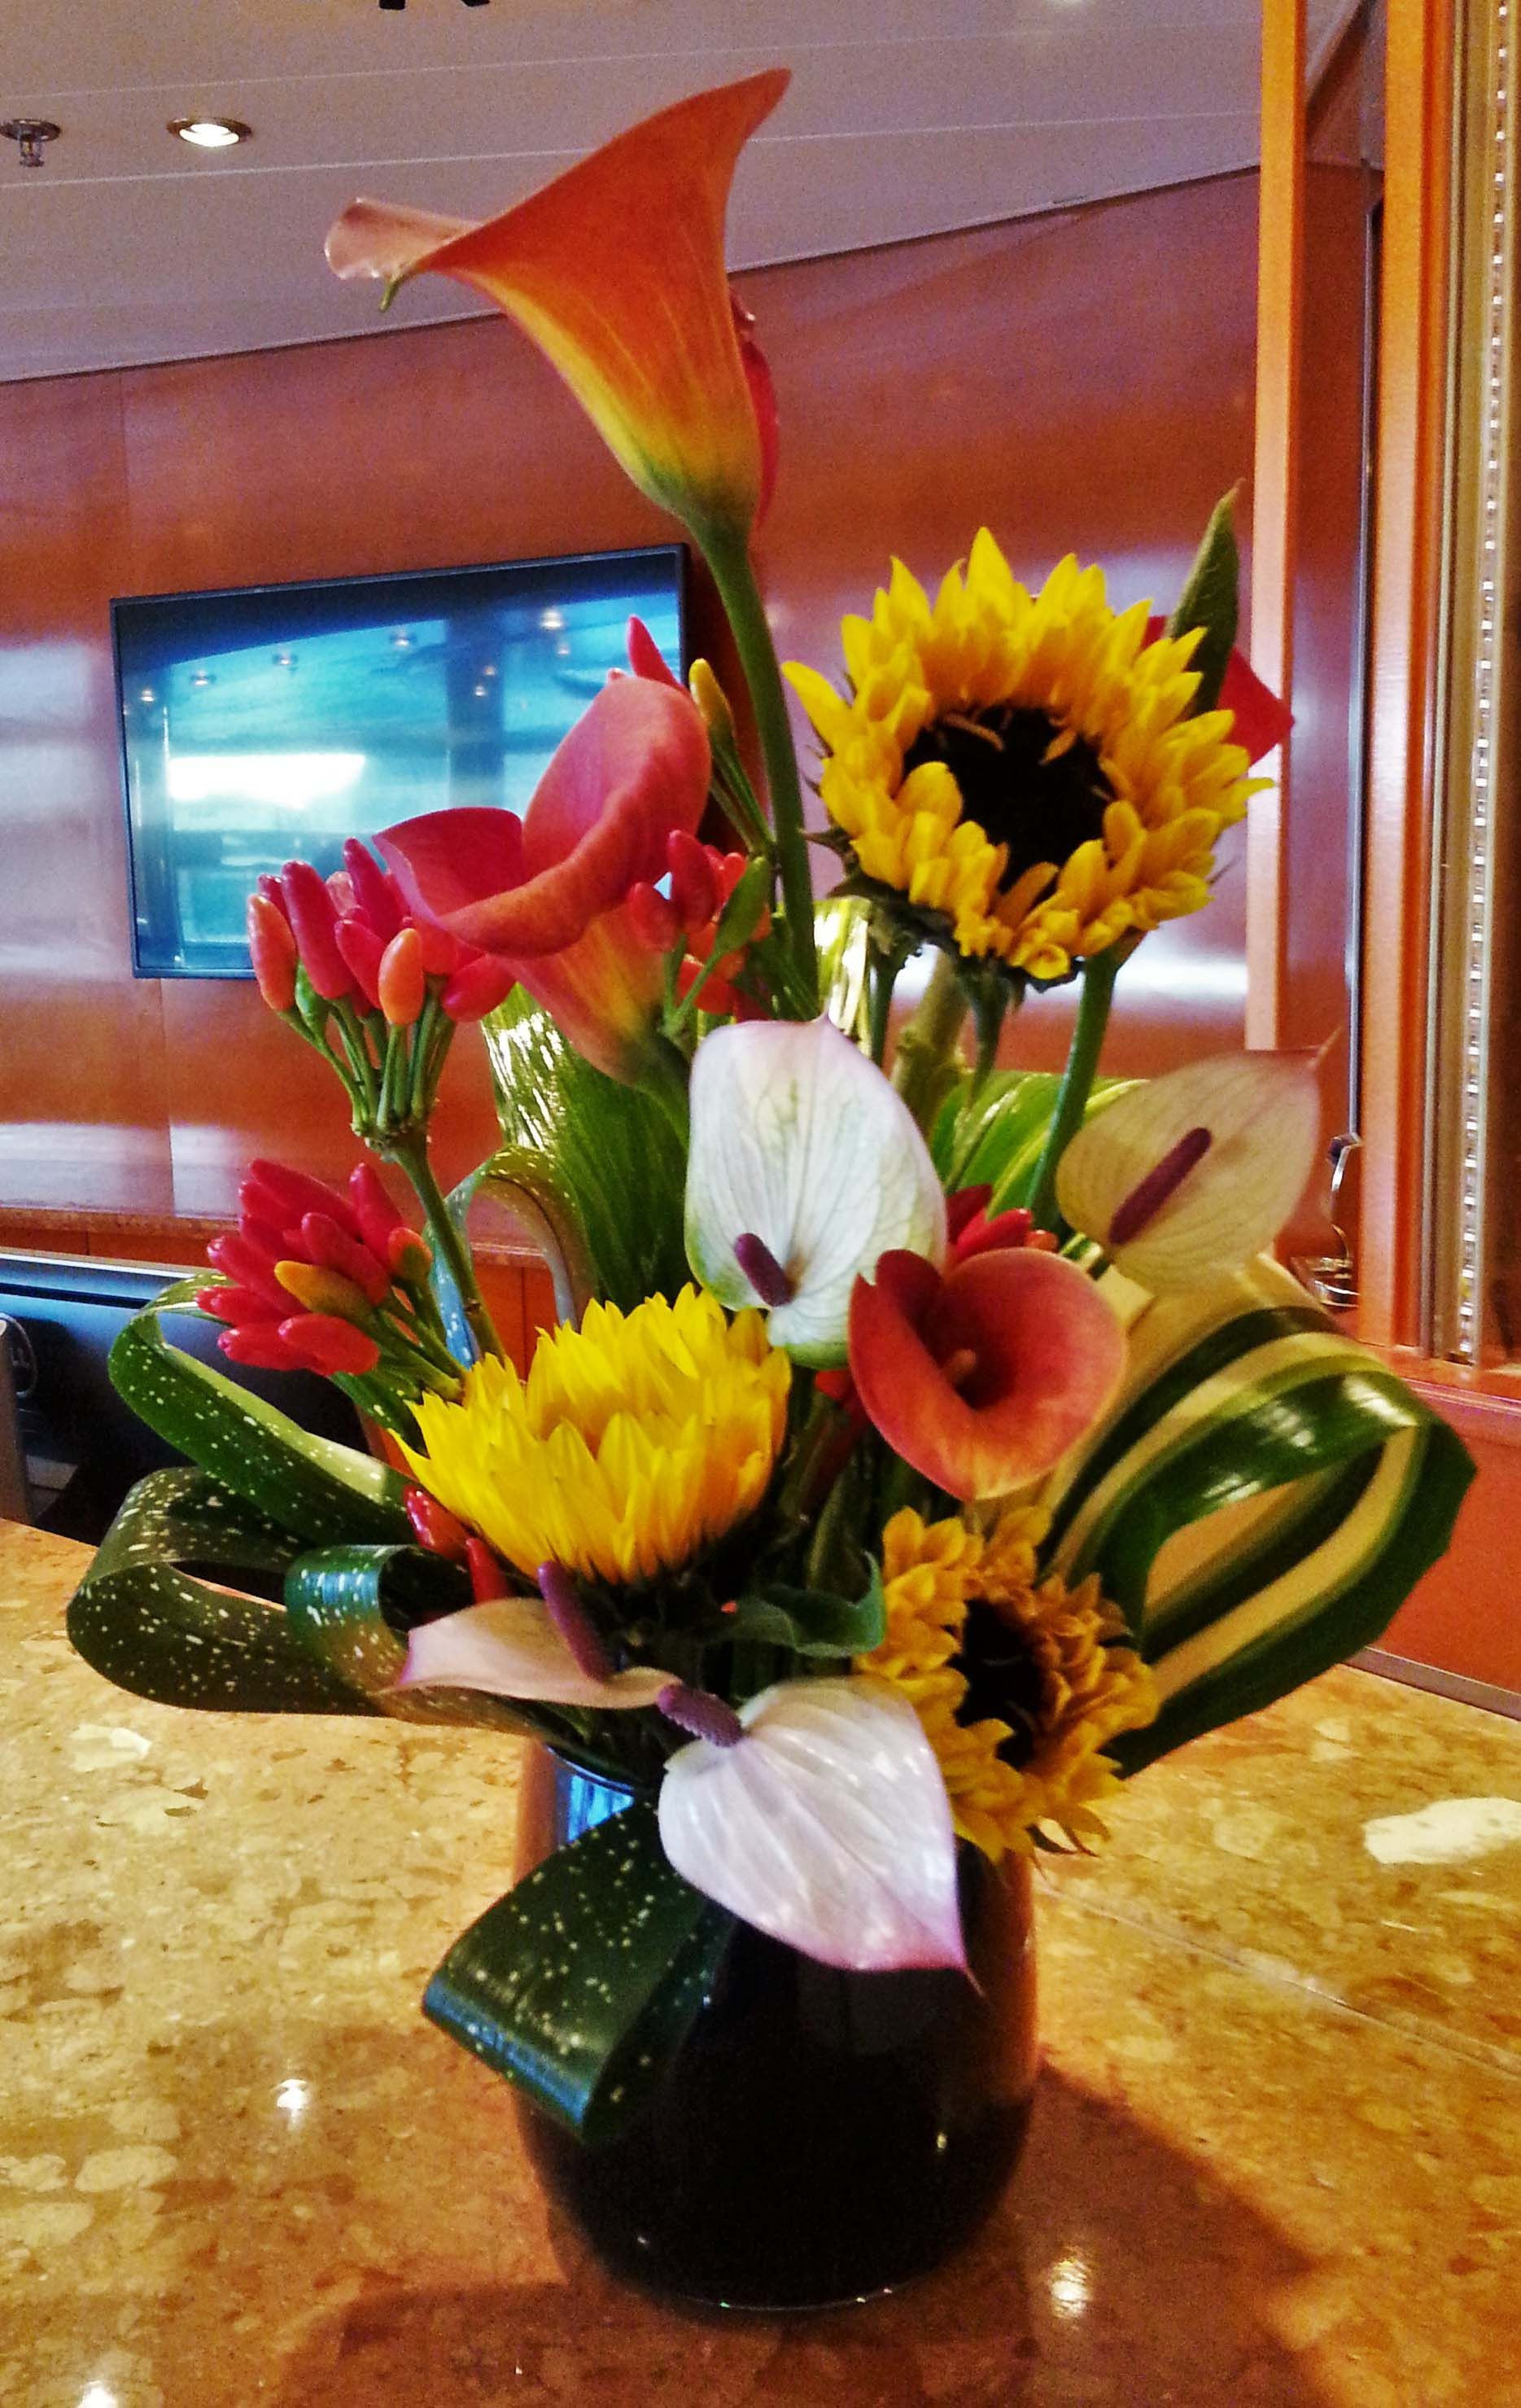 how to hold artificial flowers in a vase of flower arrangement in vase elegant 3 od sunflower orange calla lily intended for flower arrangement in vase elegant 3 od sunflower orange calla lily pink anthurium chilli peppers the weekly world